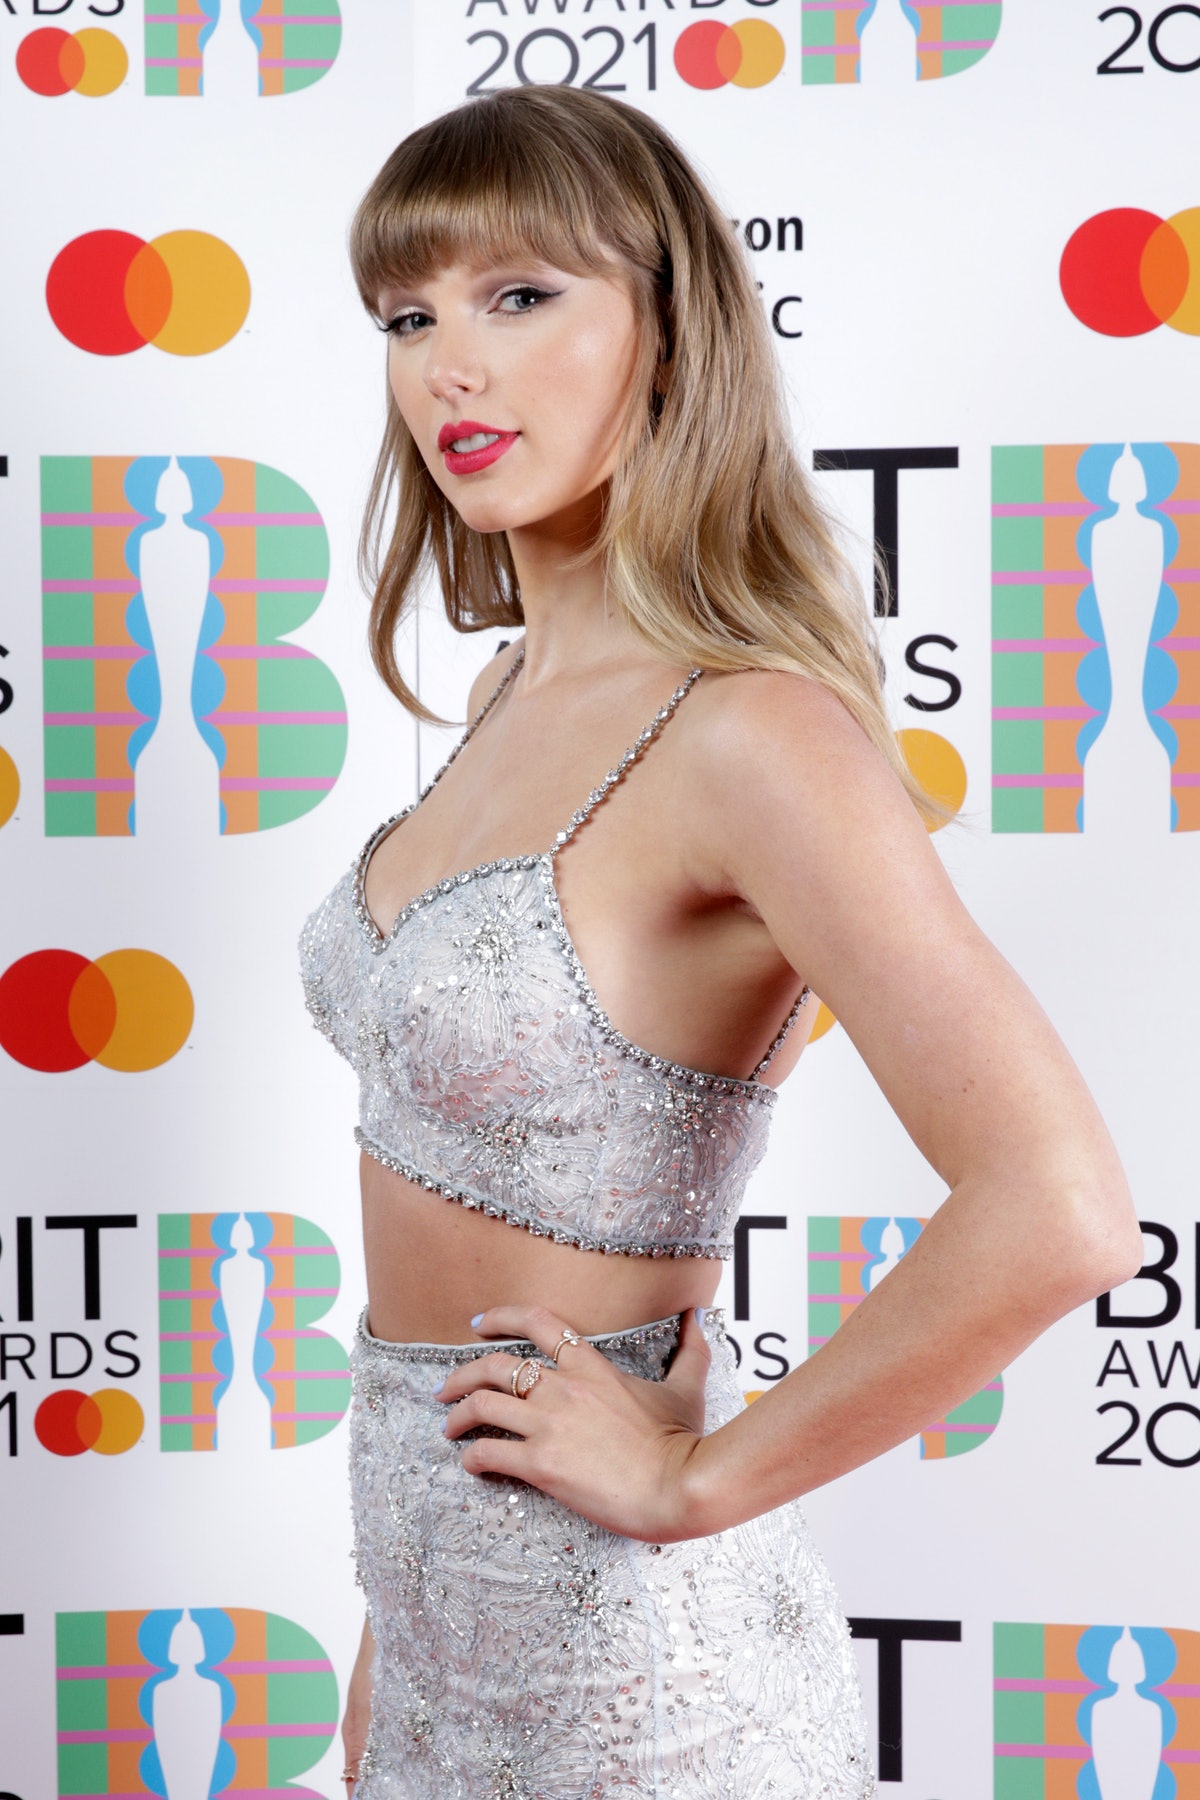 LONDON, ENGLAND - MAY 11: Taylor Swift, winner of the Global Icon award poses in the media room duri...